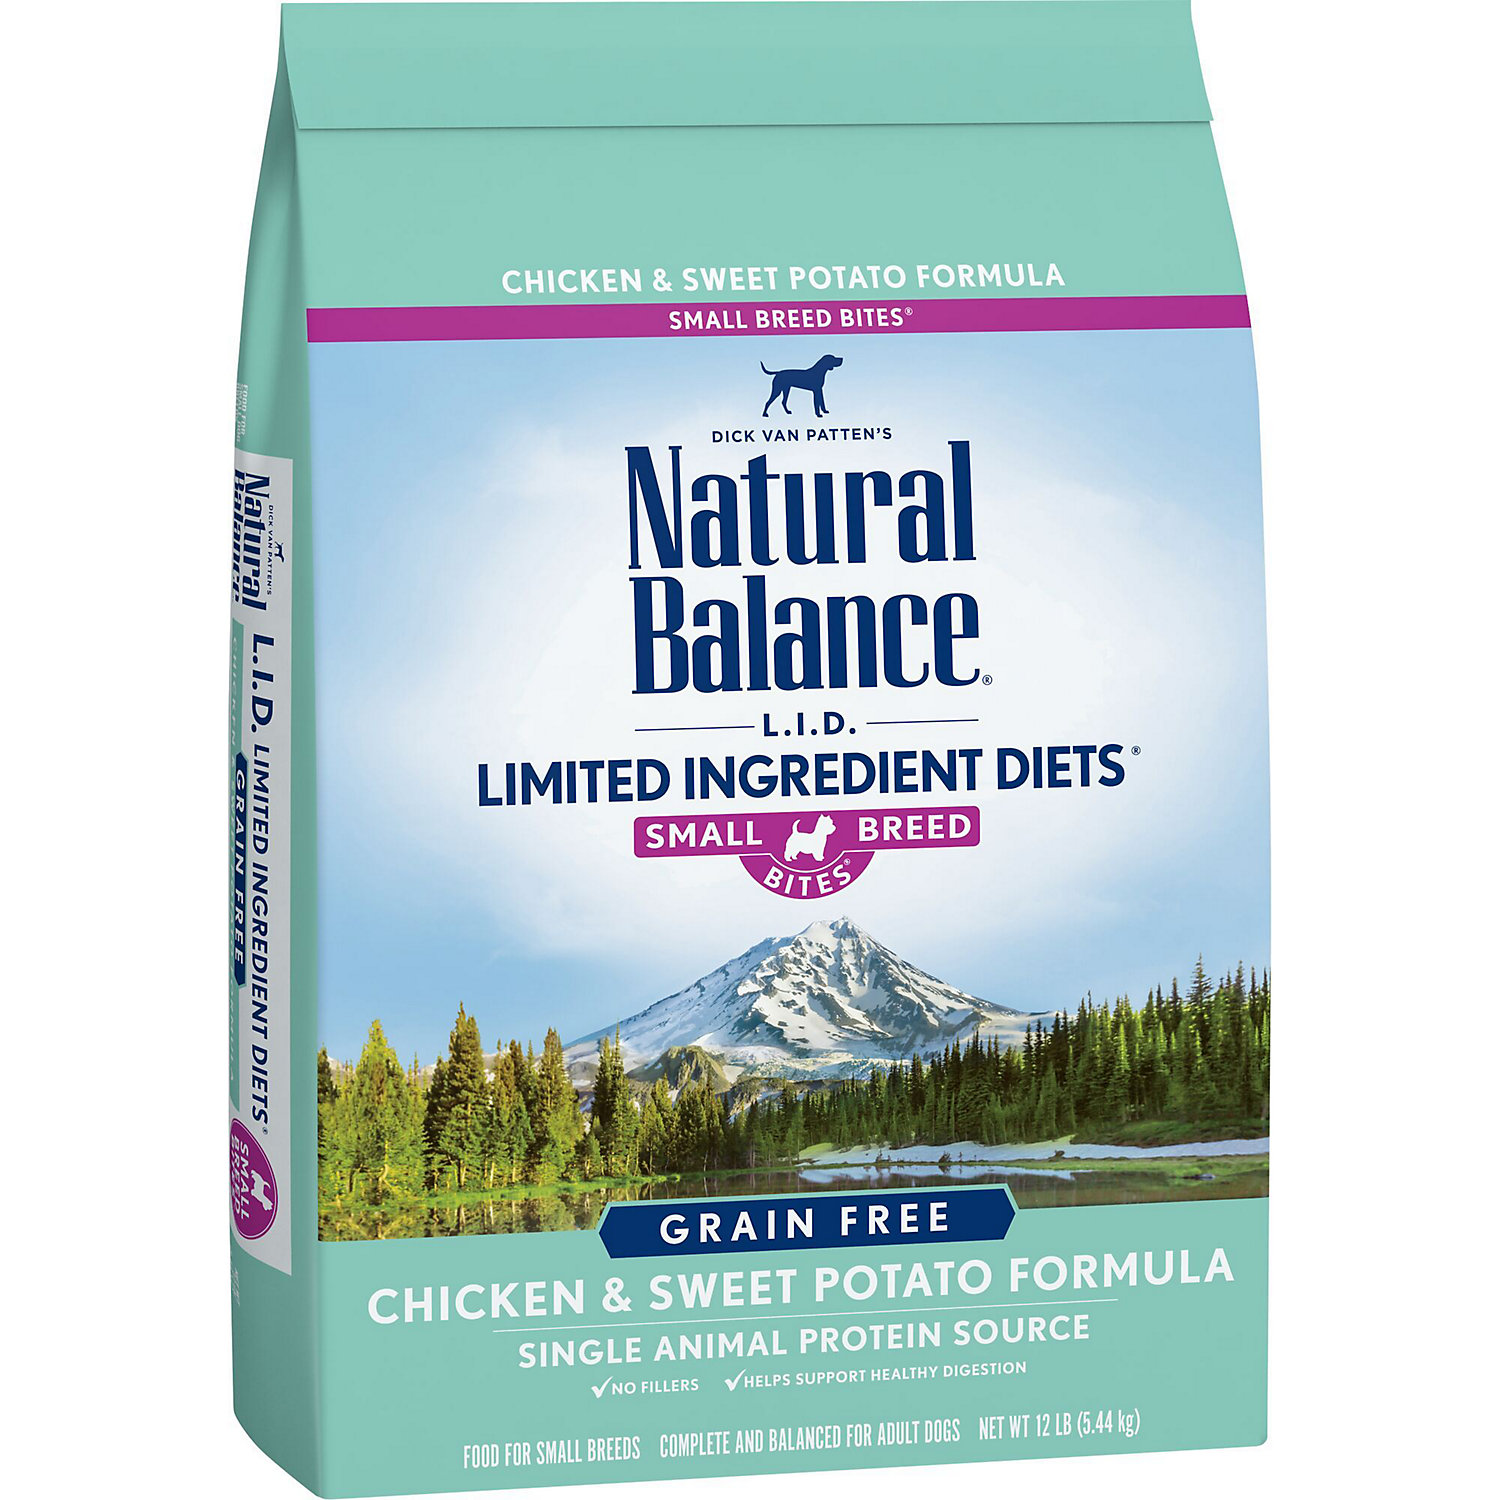 Natural Balance L.i.d. Limited Ingredient Diets Chicken & Sweet Potato Small Breed Bites Dog Food, 12 Lbs.